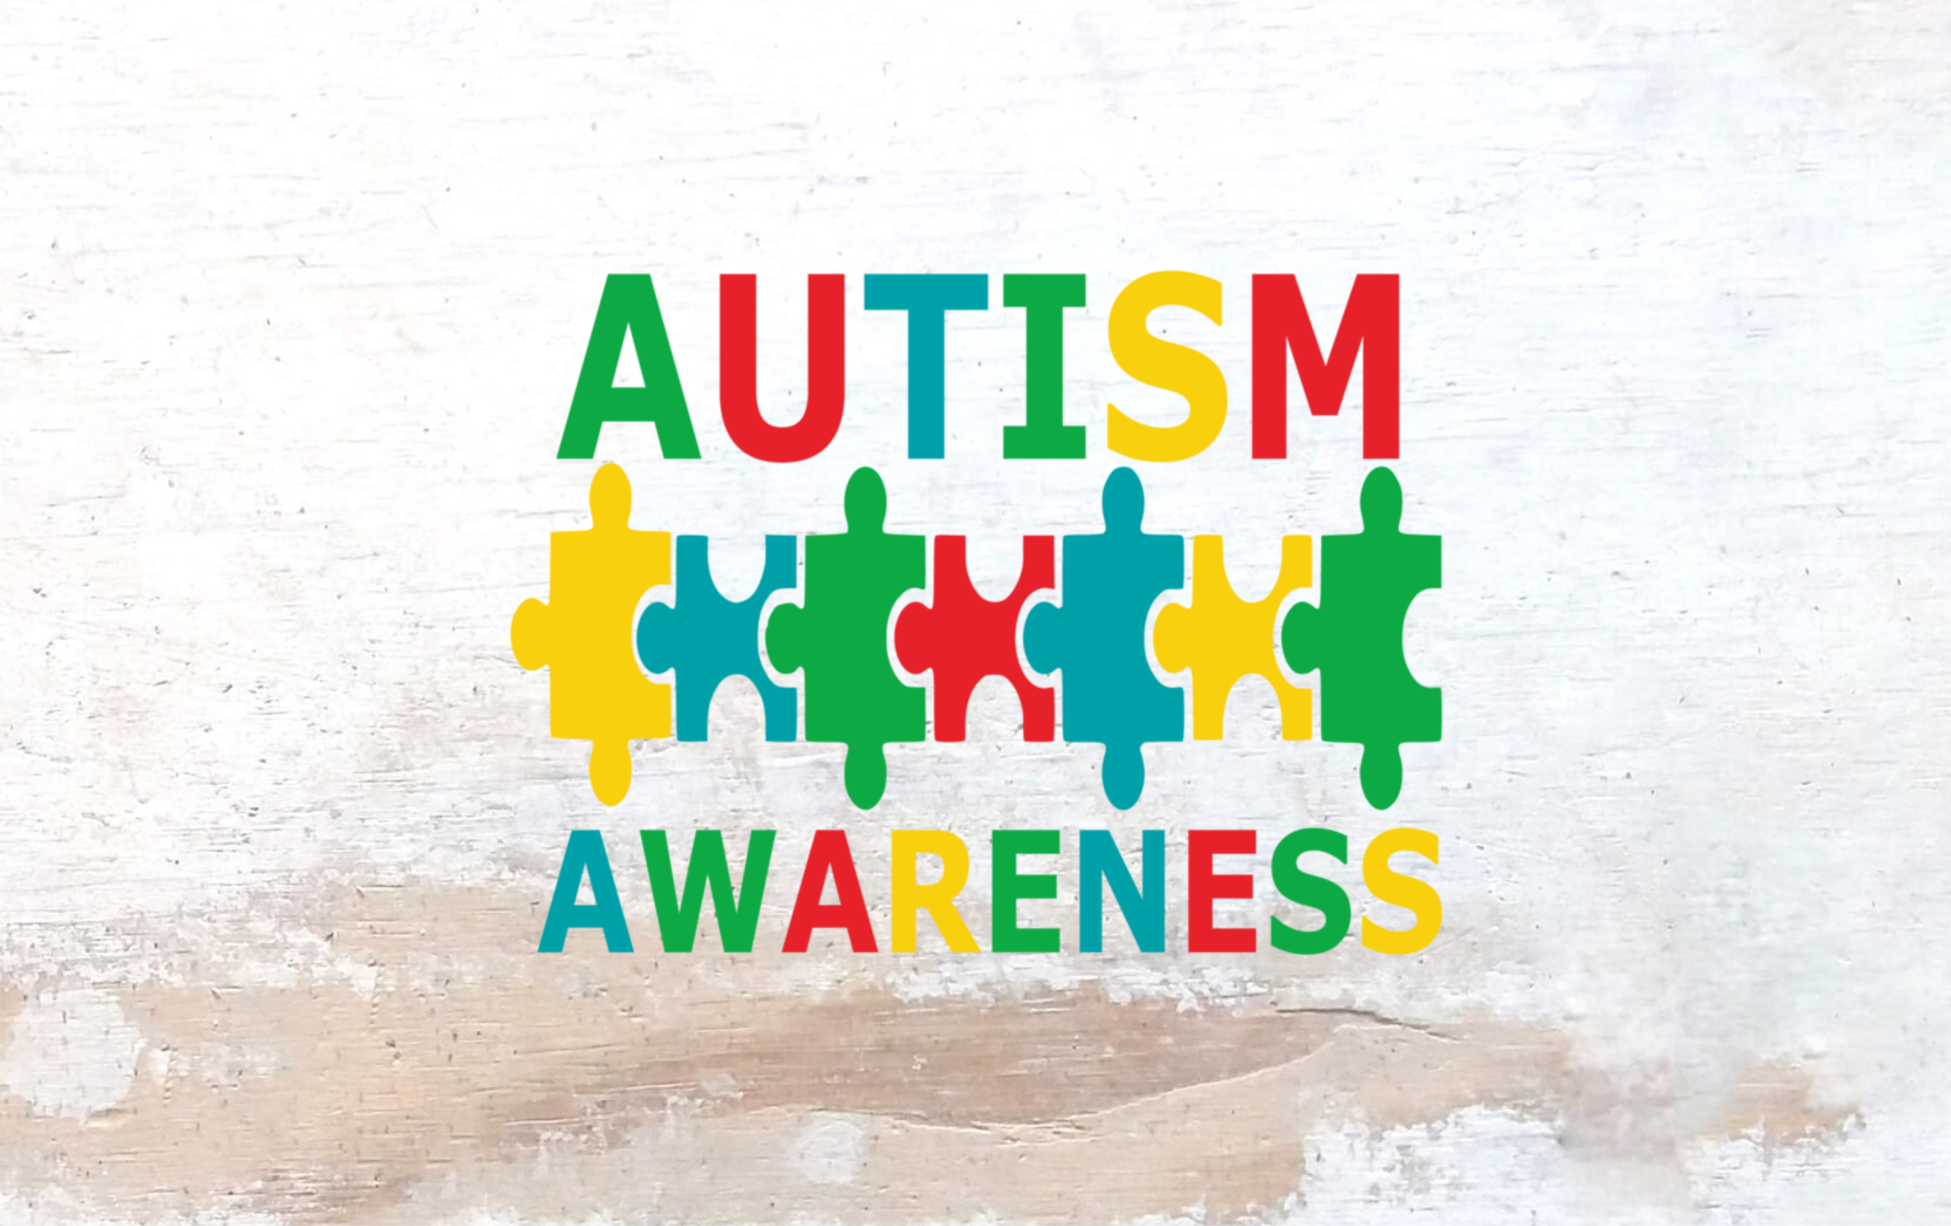 Autism Awareness at Roanoke Island Festival Park graphic